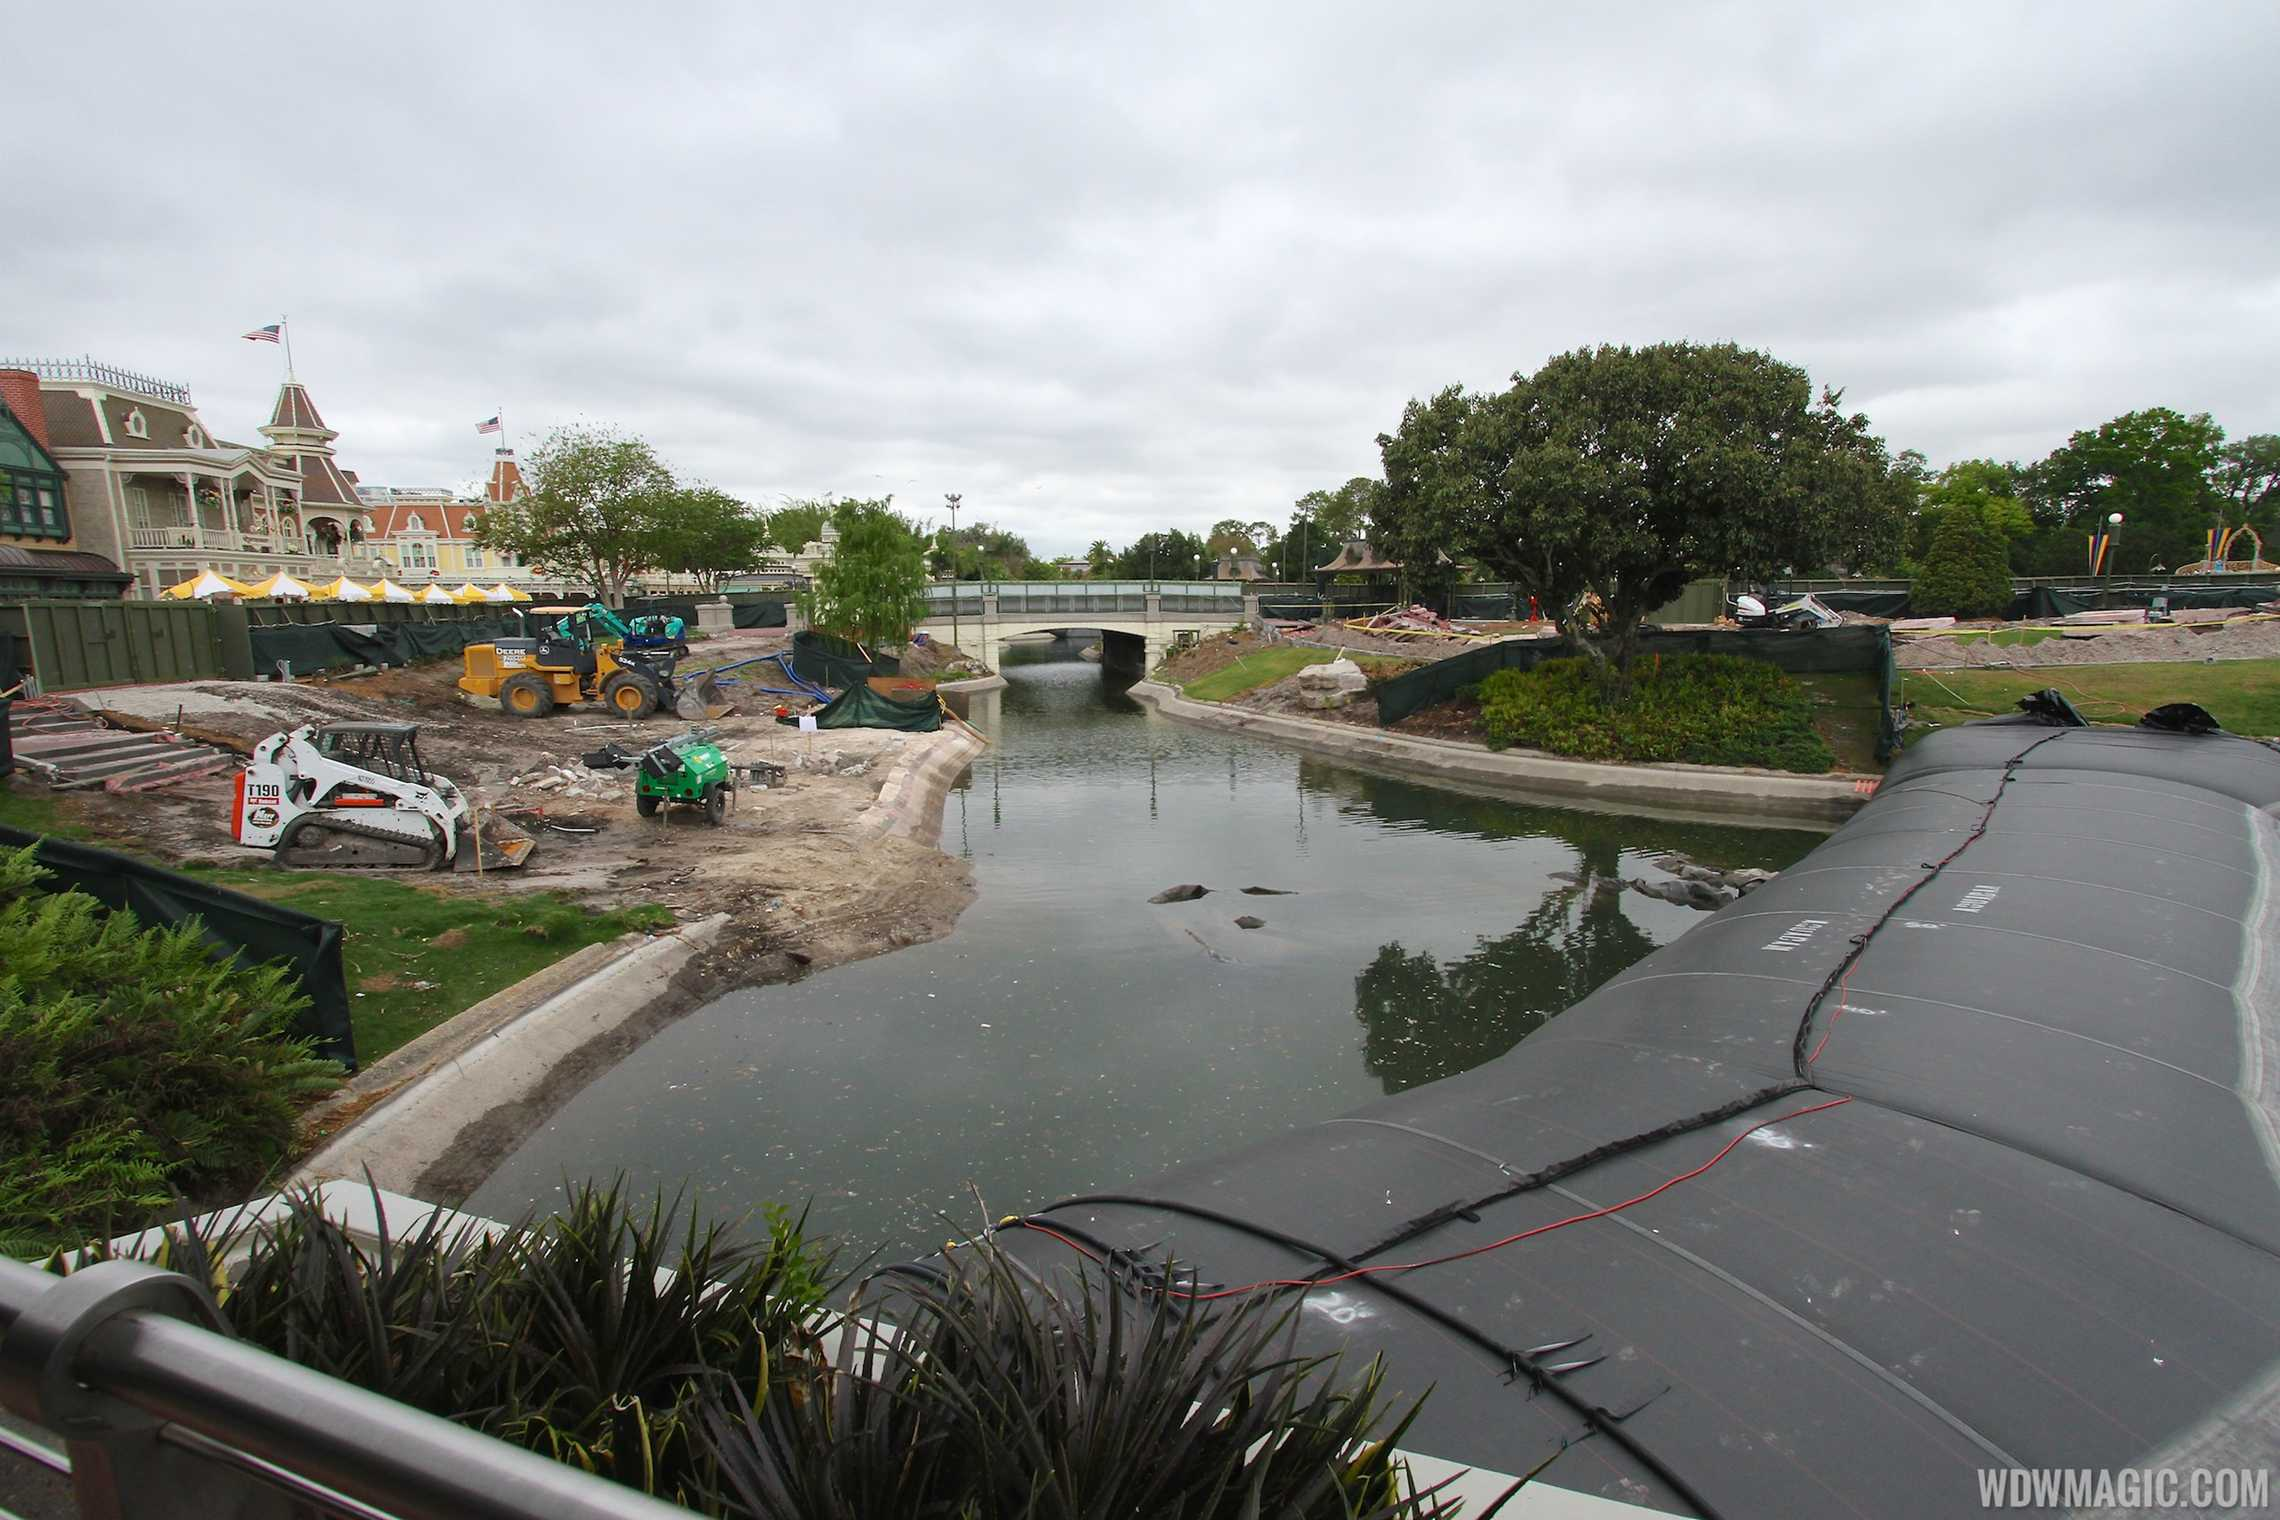 Dams installed on the Magic Kingdom's waterways